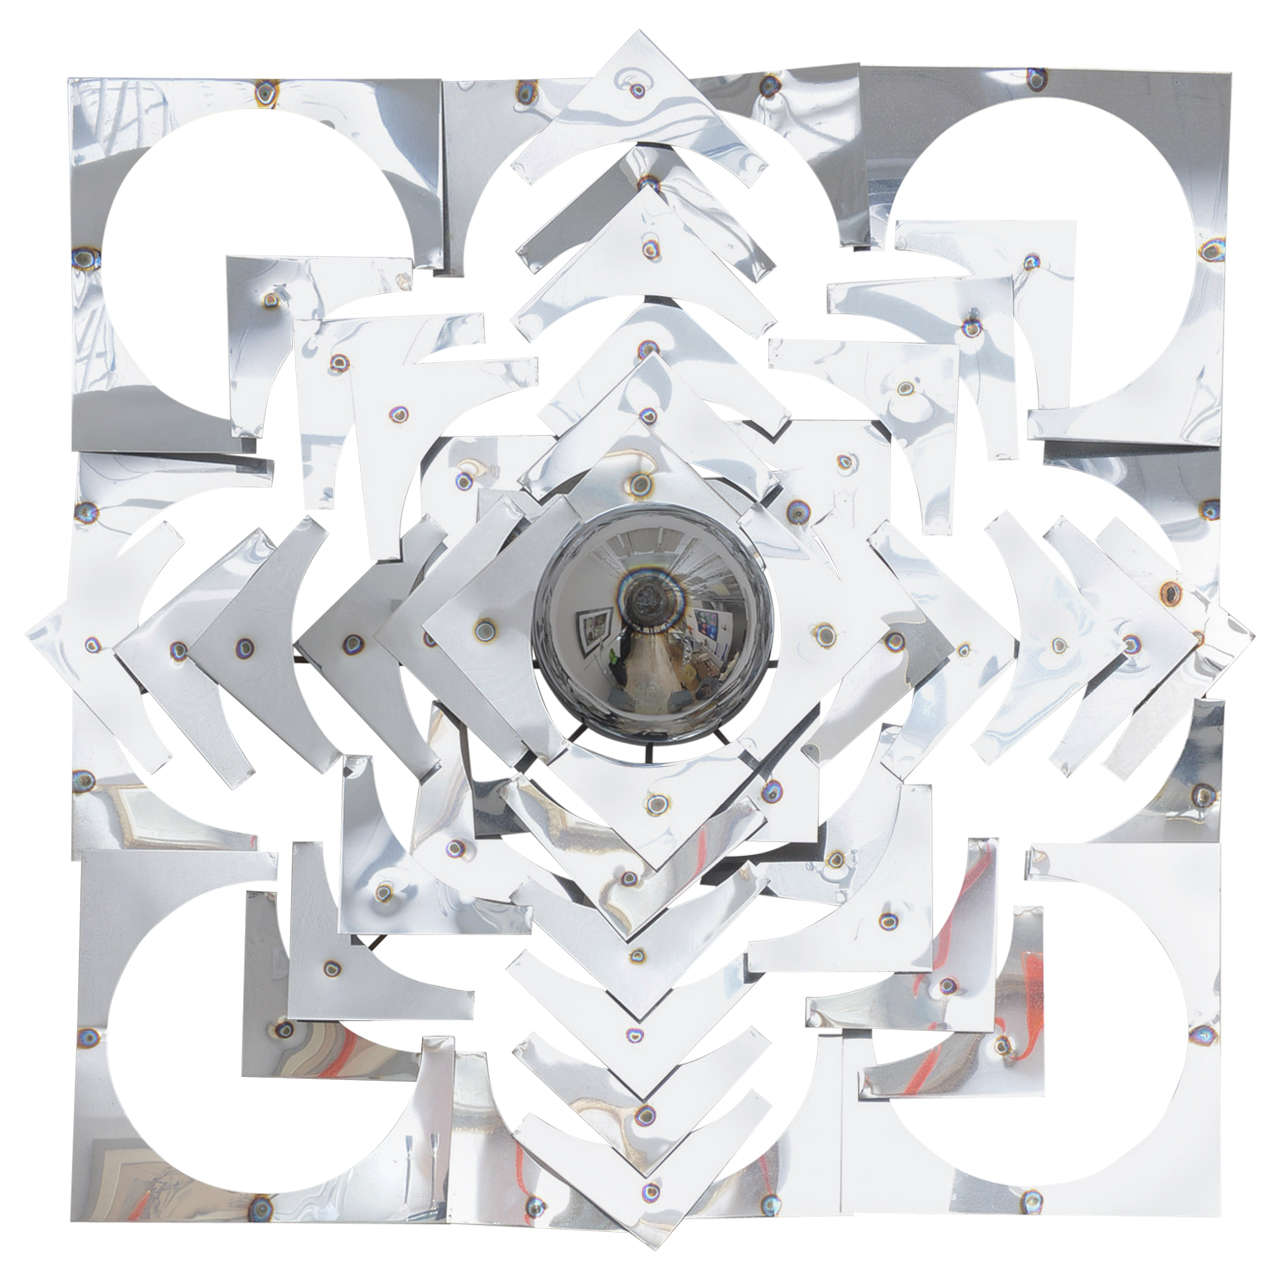 This large-scale wall sculpture was created in the 1970s and is very much a take on the kaleidoscope with its geometric shapes and forms in a stylized pattern.  The use of polished chrome gives the piece great deal of movement as the light plays